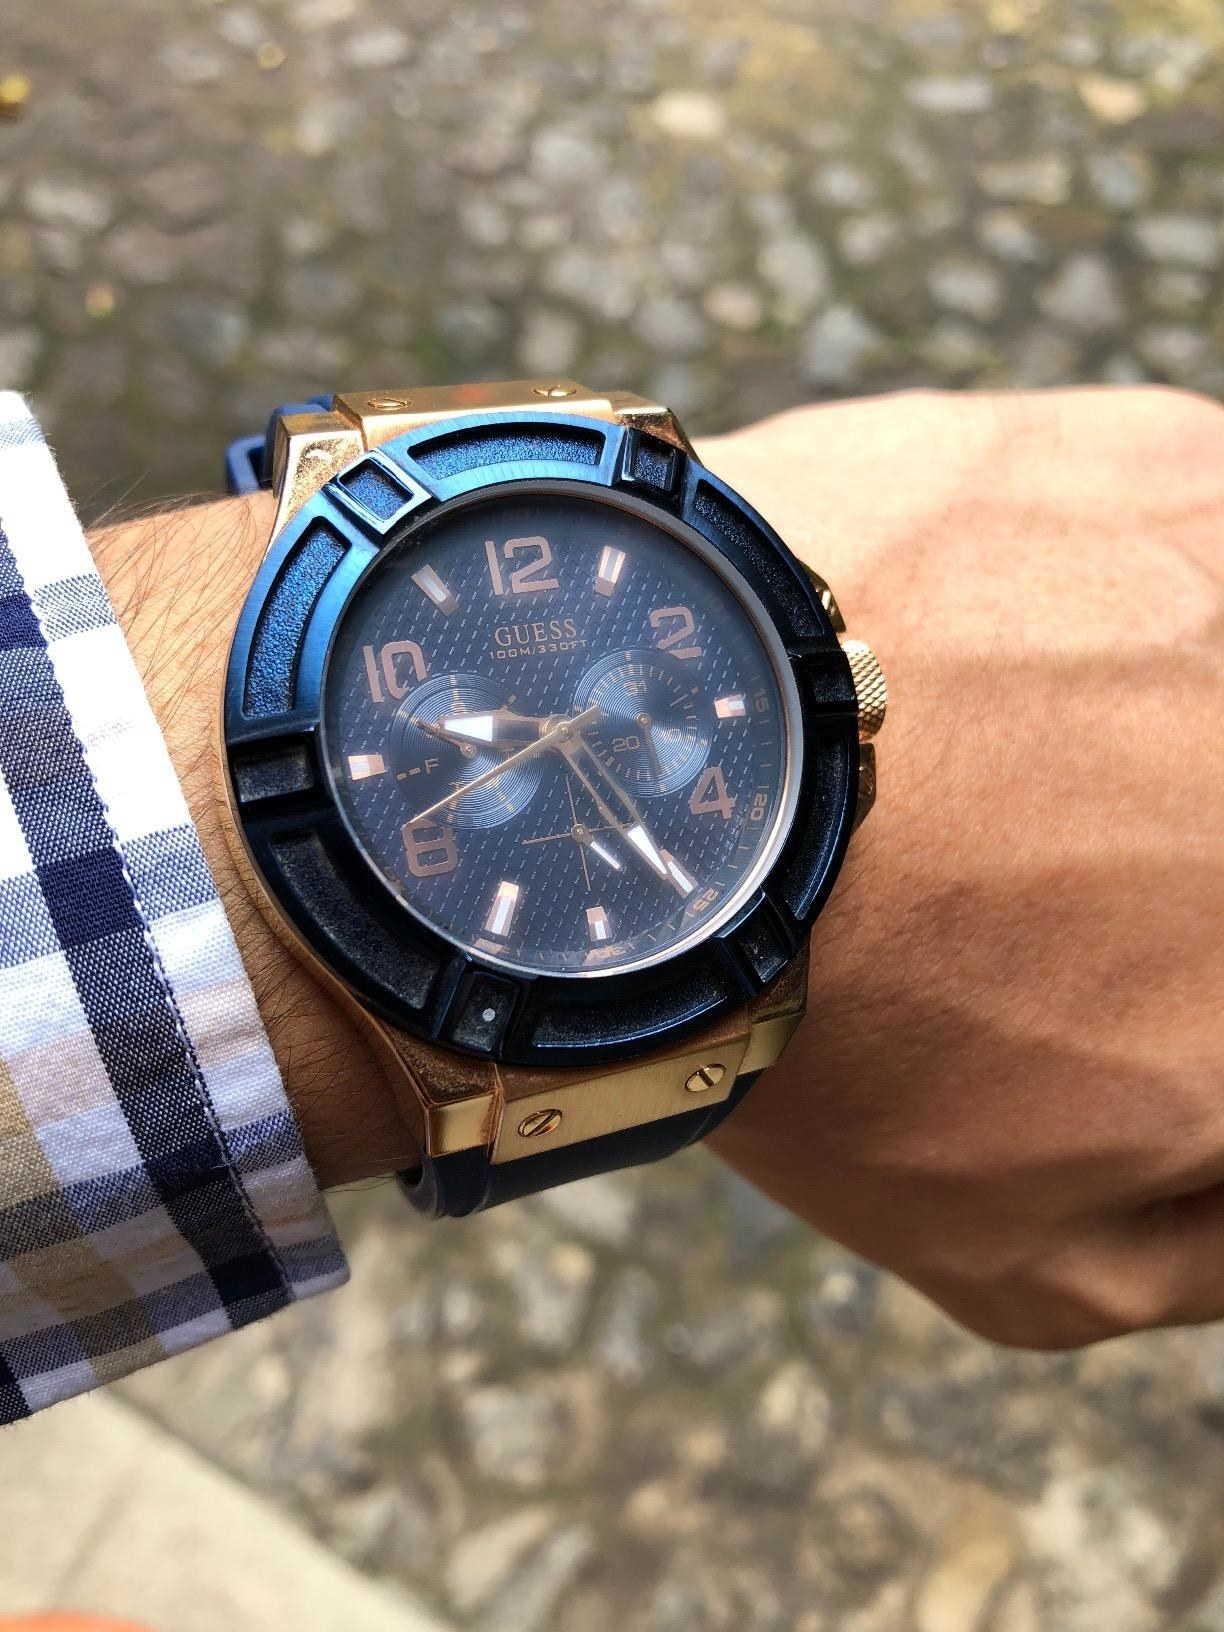 A reviewer wears the watch